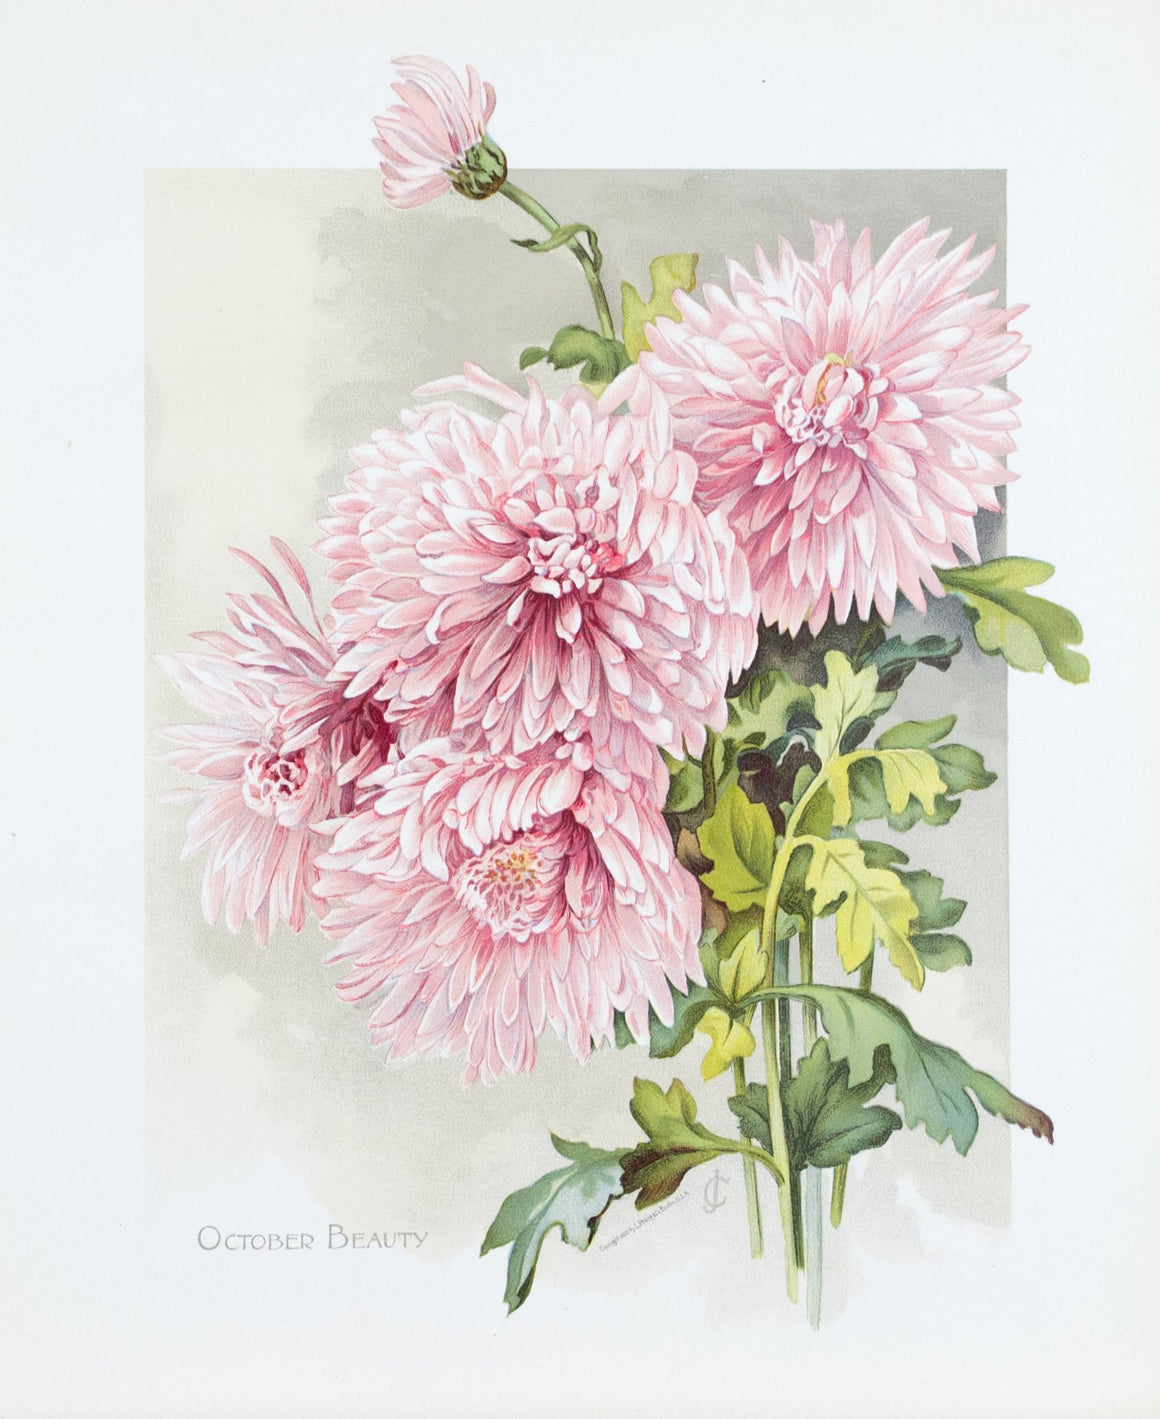 1890 October Beauty Chrysanthemum - Mathews